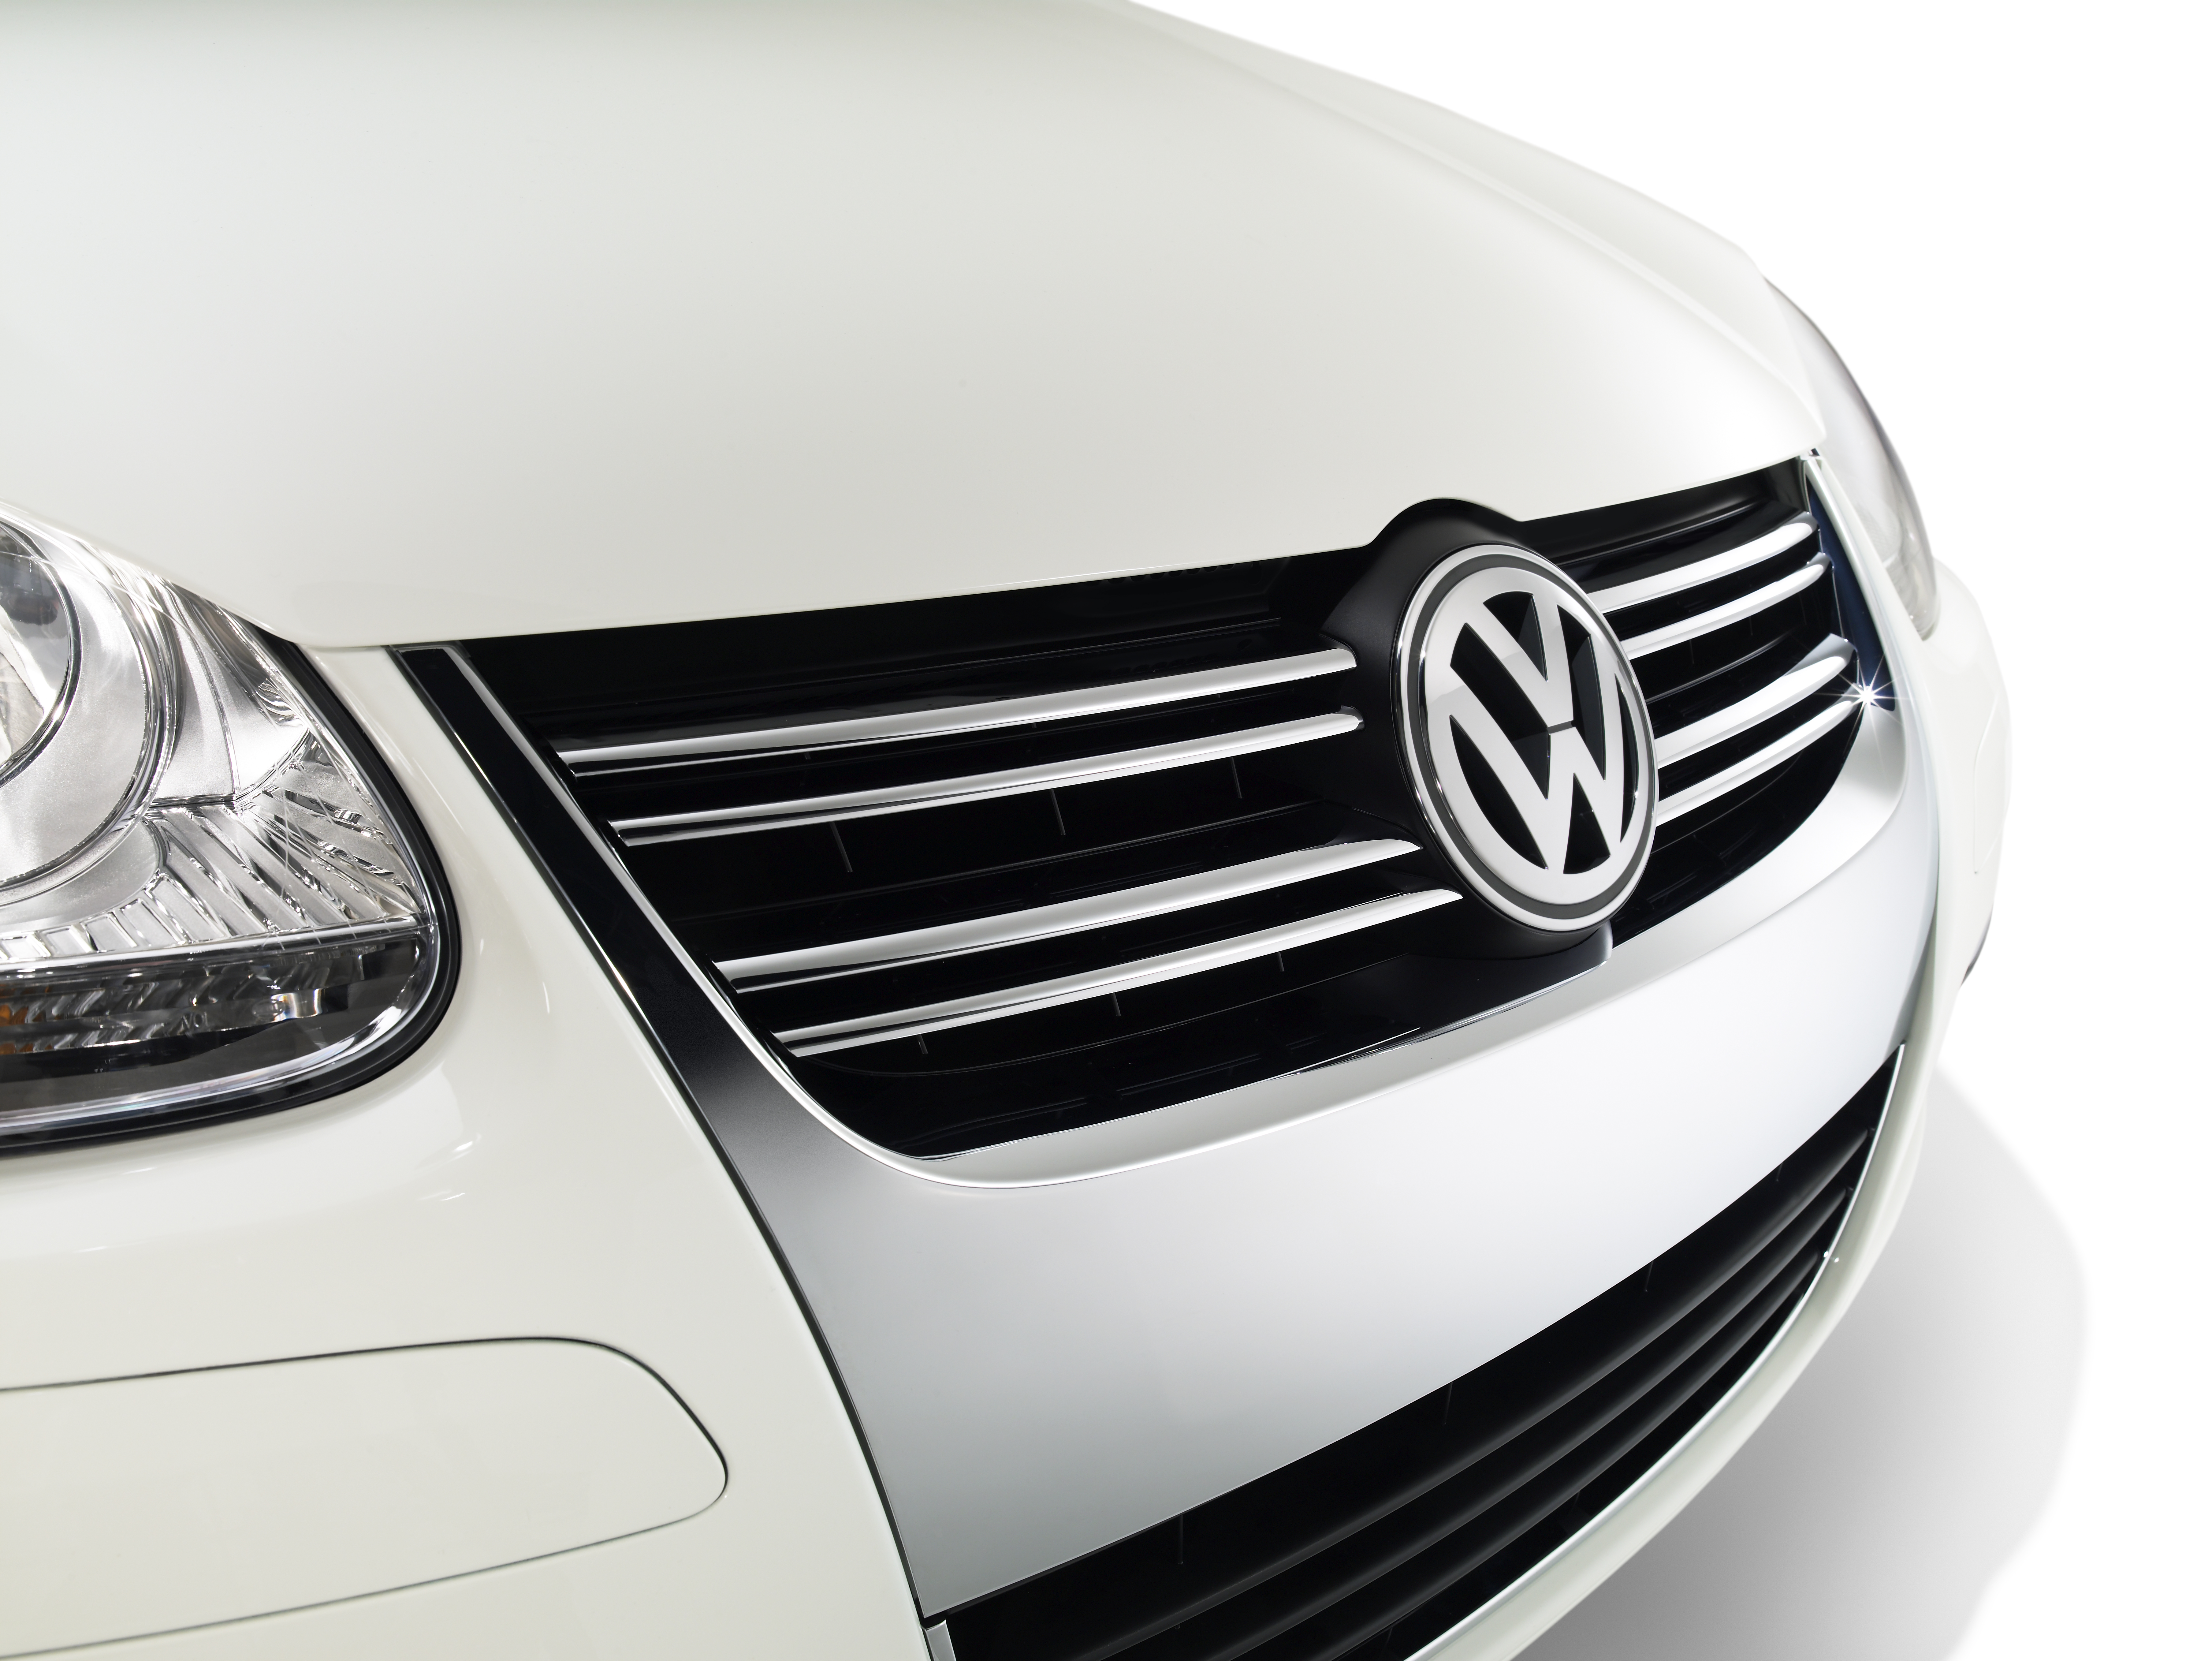 VW Front grill_v2 layered copy